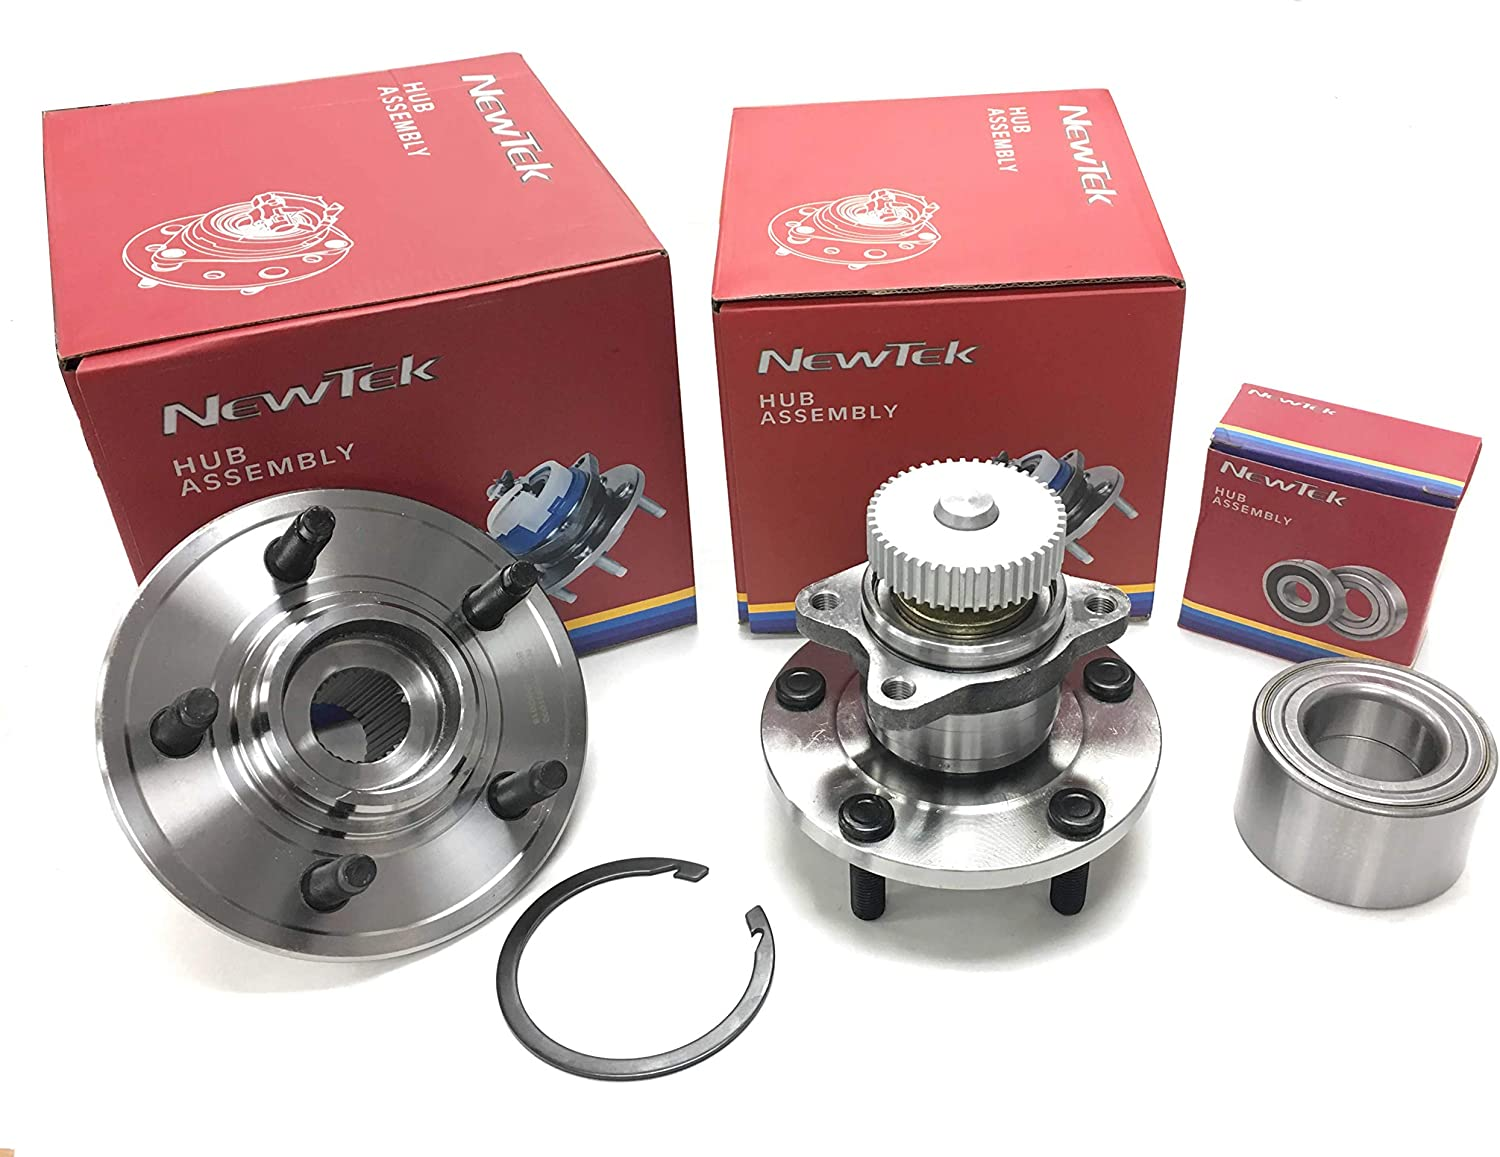 H512022 正規品スーパーSALE×店内全品キャンペーン 情熱セール Rear Wheel Bearing Assembly and Hub